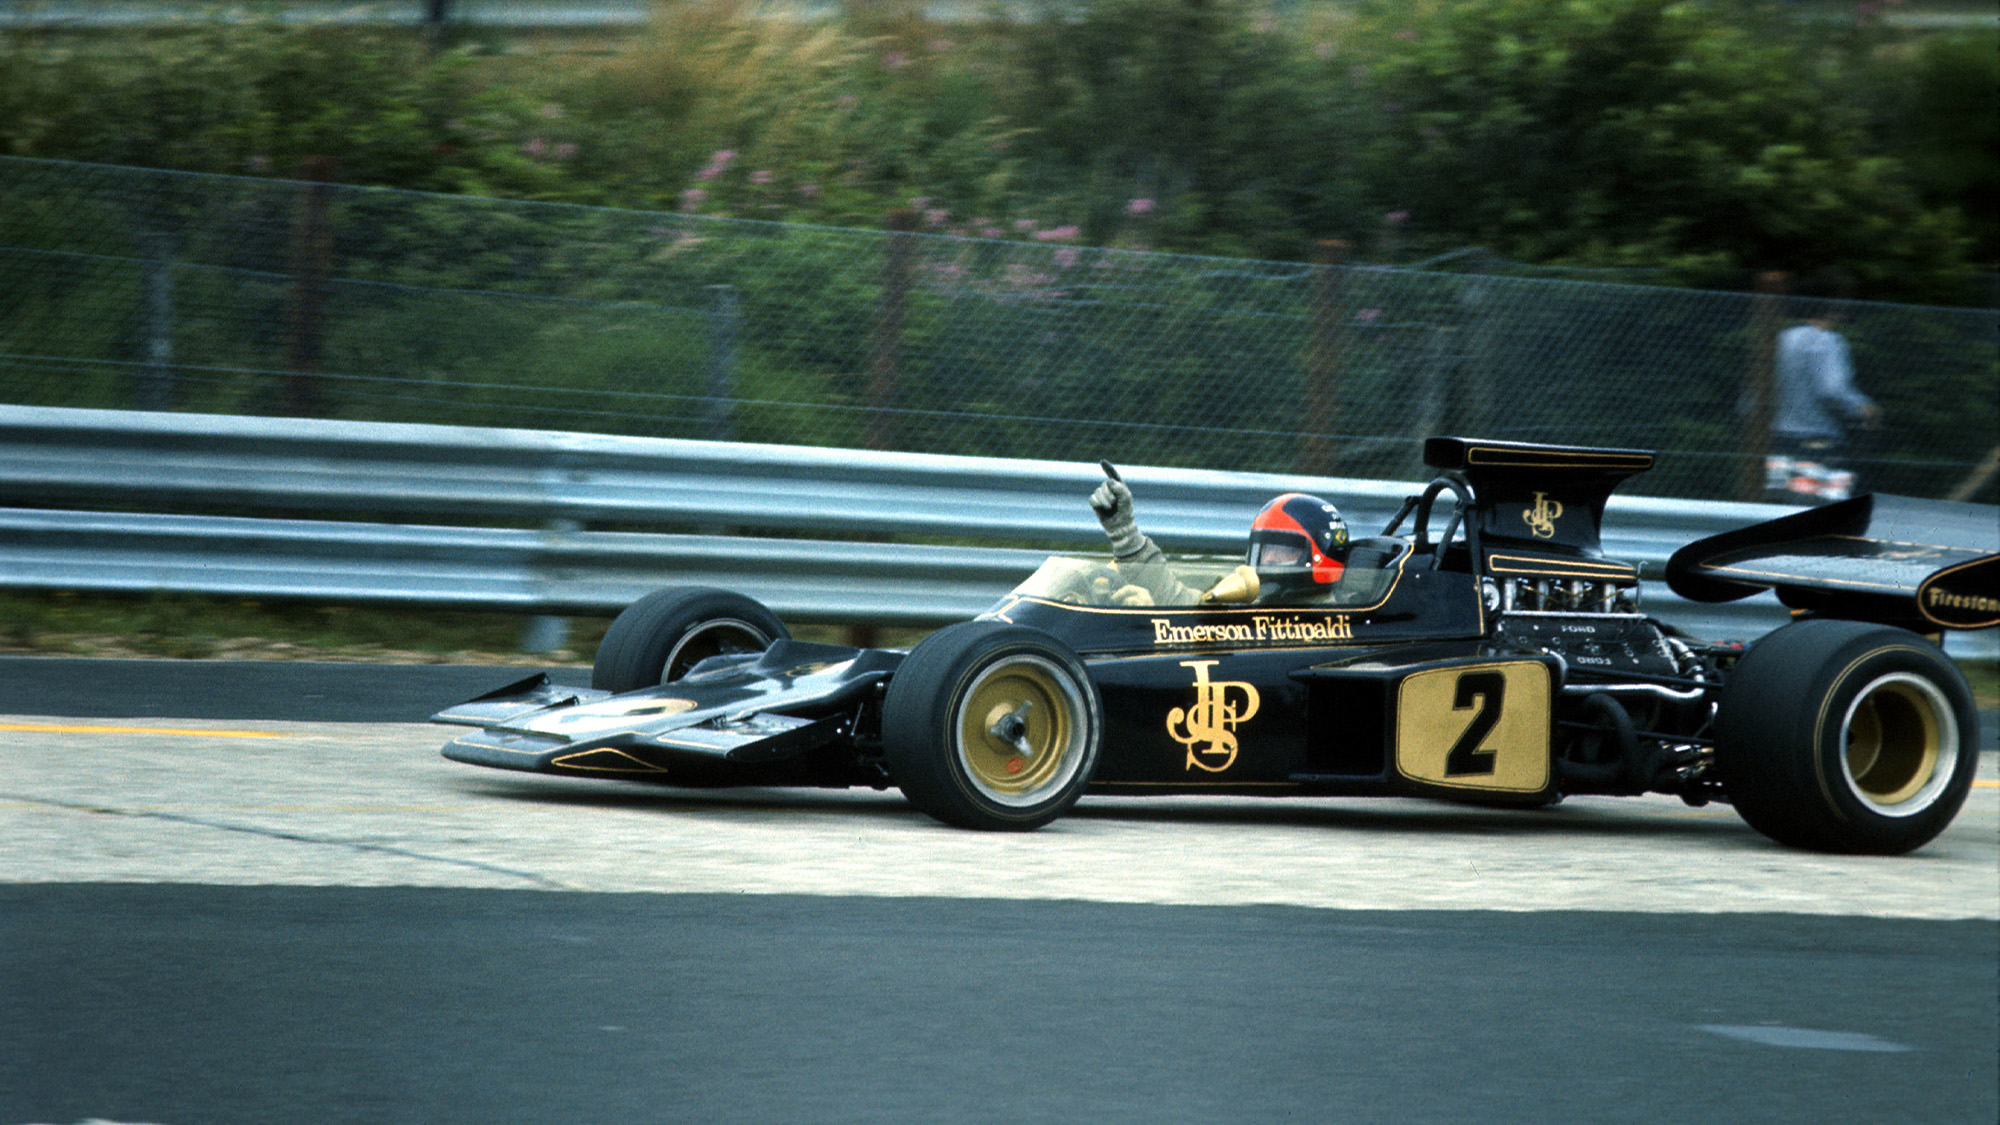 Emerson Fittipaldi in the black and gold Lotus 72 at the Nurburgring for the 1972 German Grand Prix